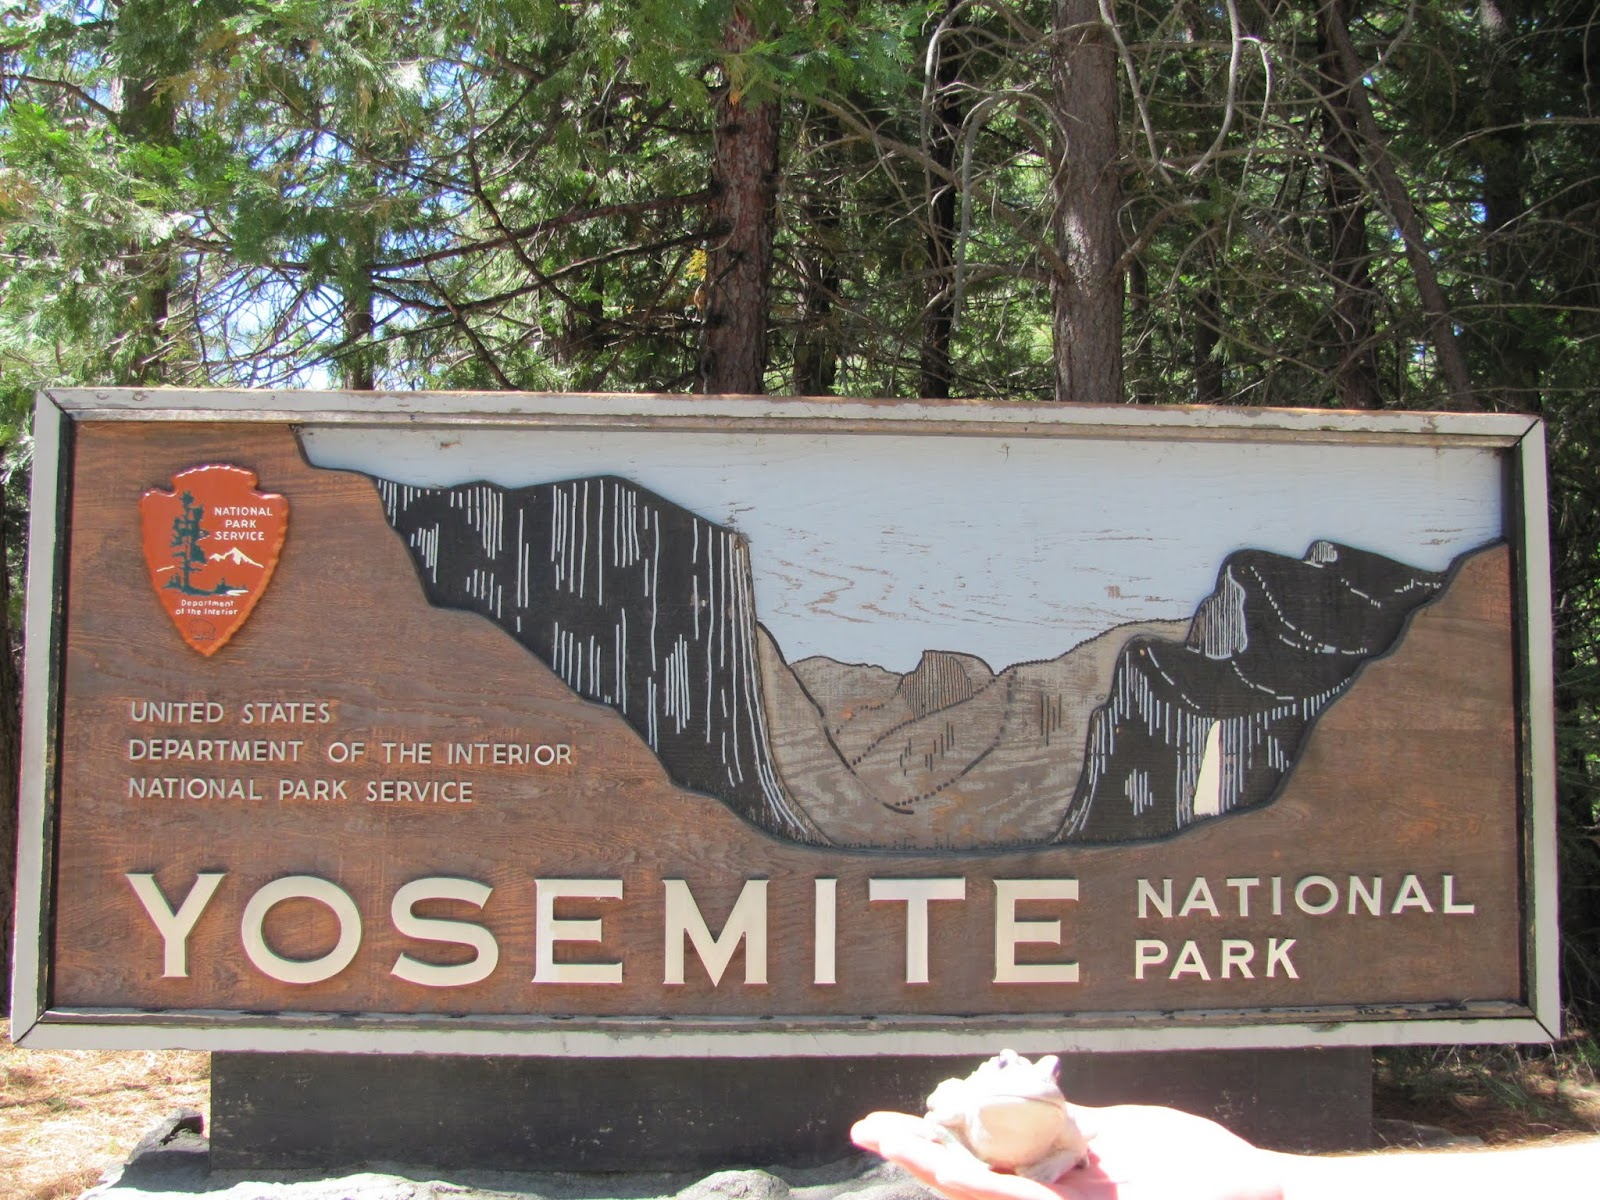 Frog poses in front of the Yosemite National Park, California welcome sign